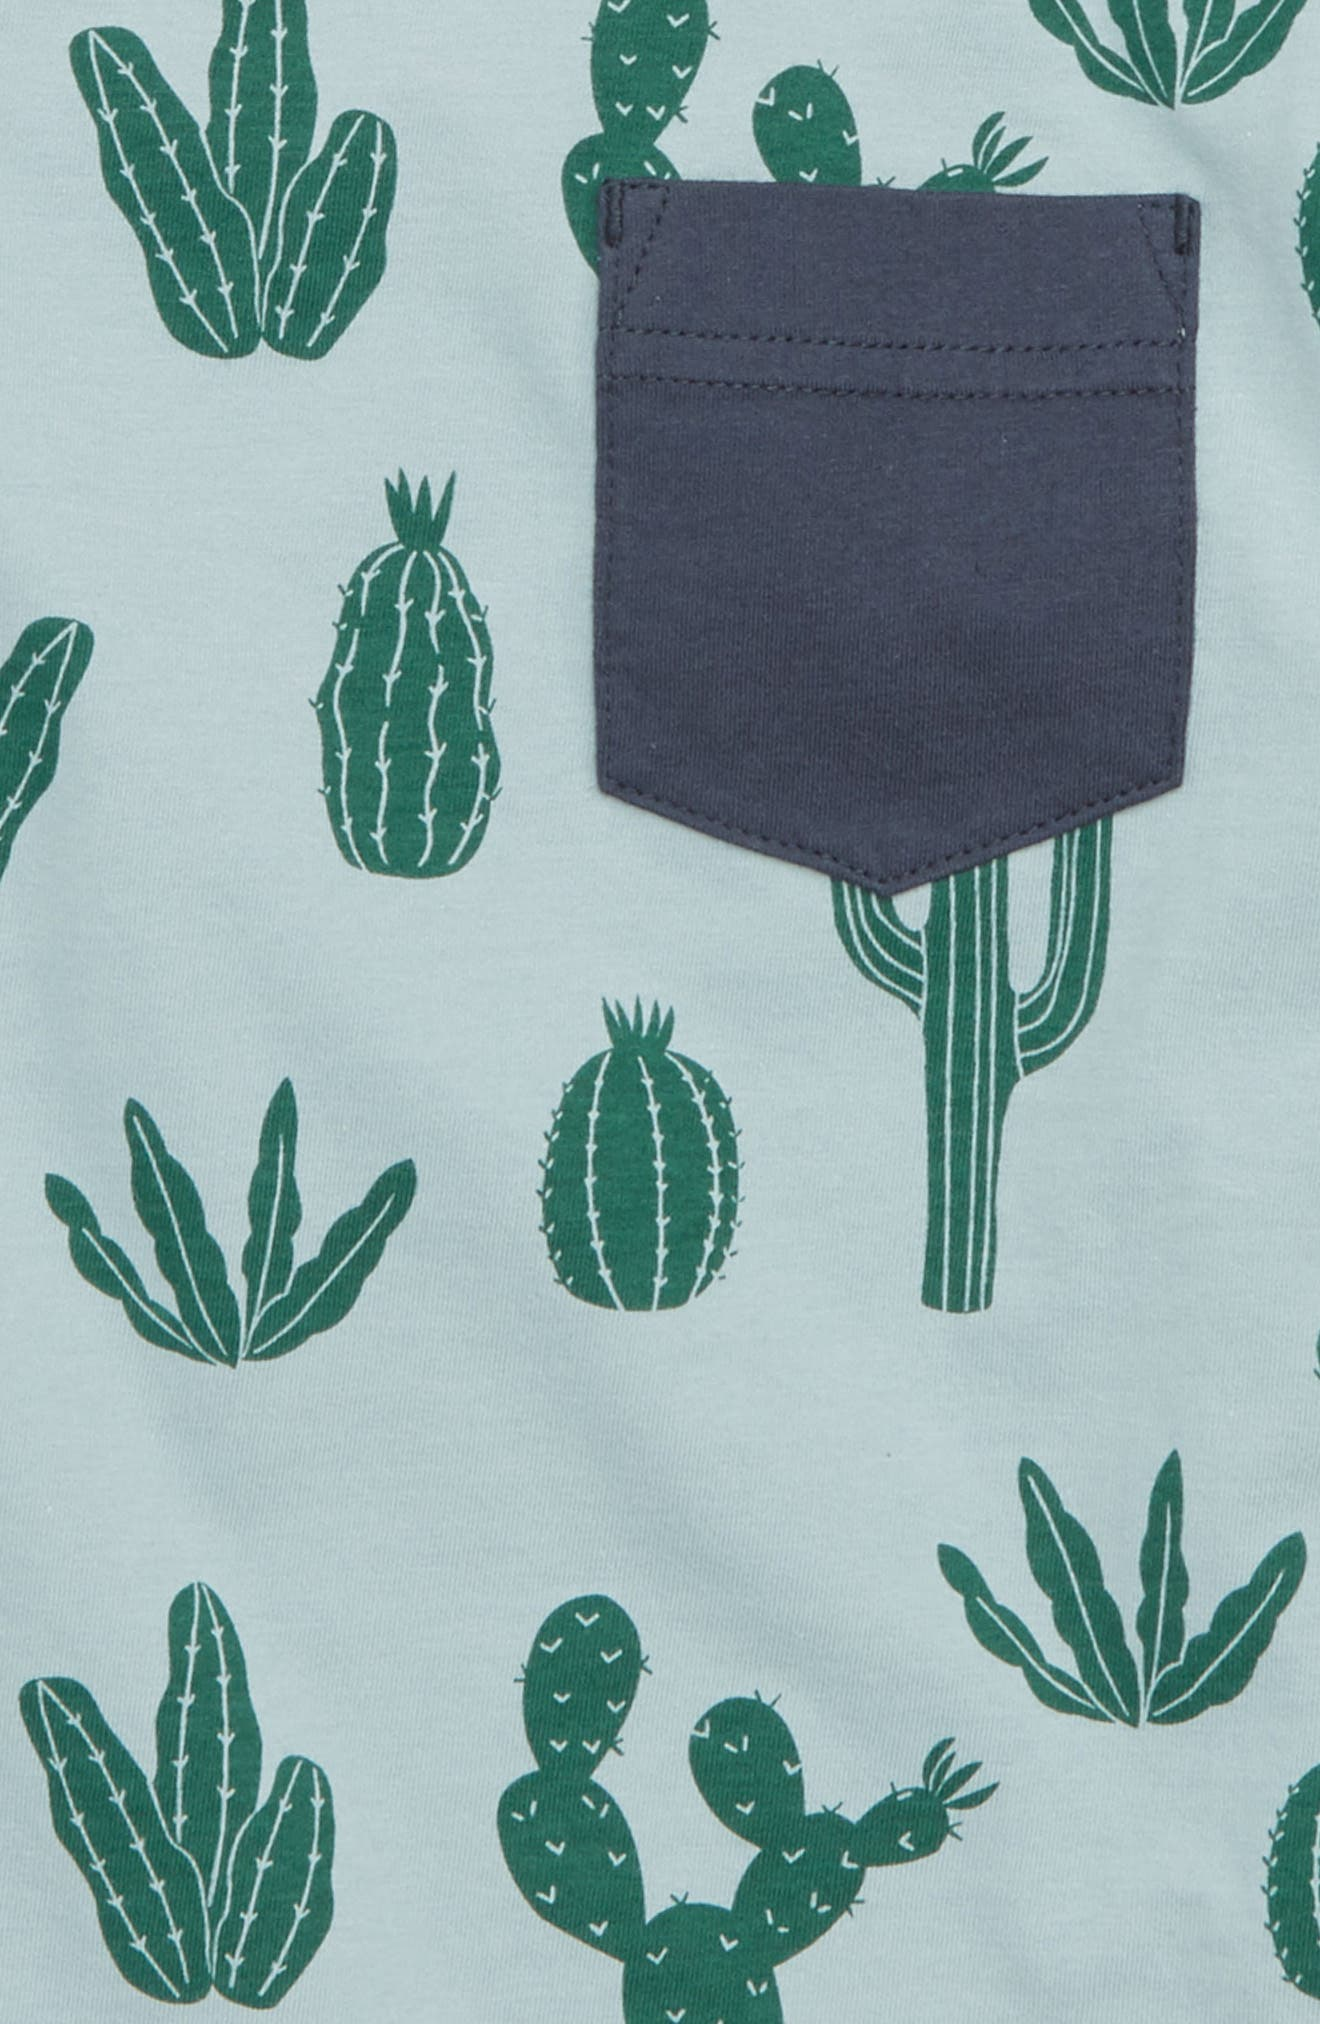 Fish Graphic Pocket T-Shirt,                             Alternate thumbnail 2, color,                             Classic Cactii